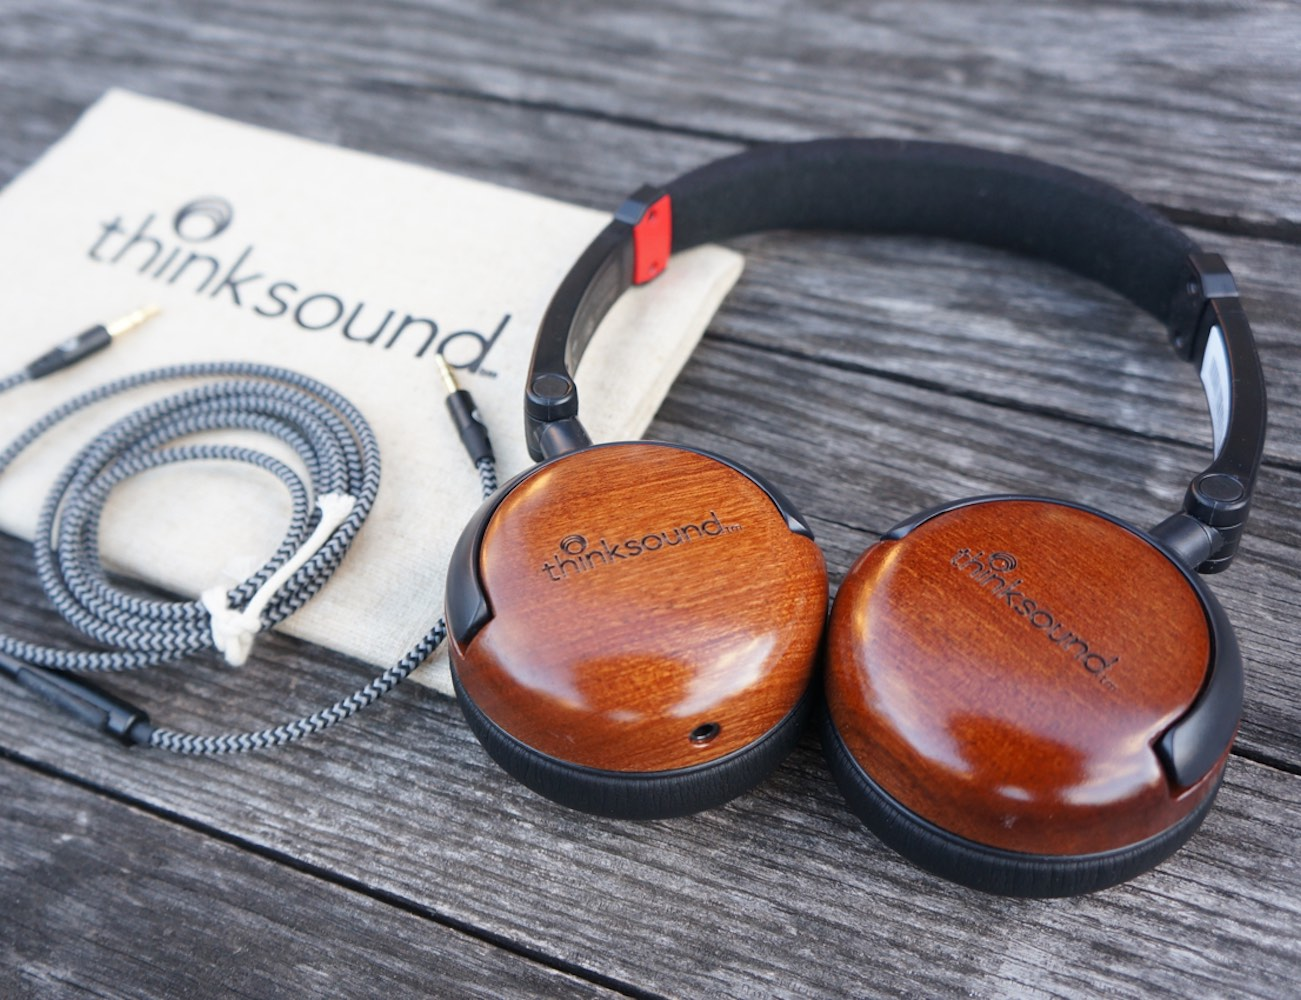 On1 by Thinksound – Supra-Aural On-Ear Monitor Wooden Headphone